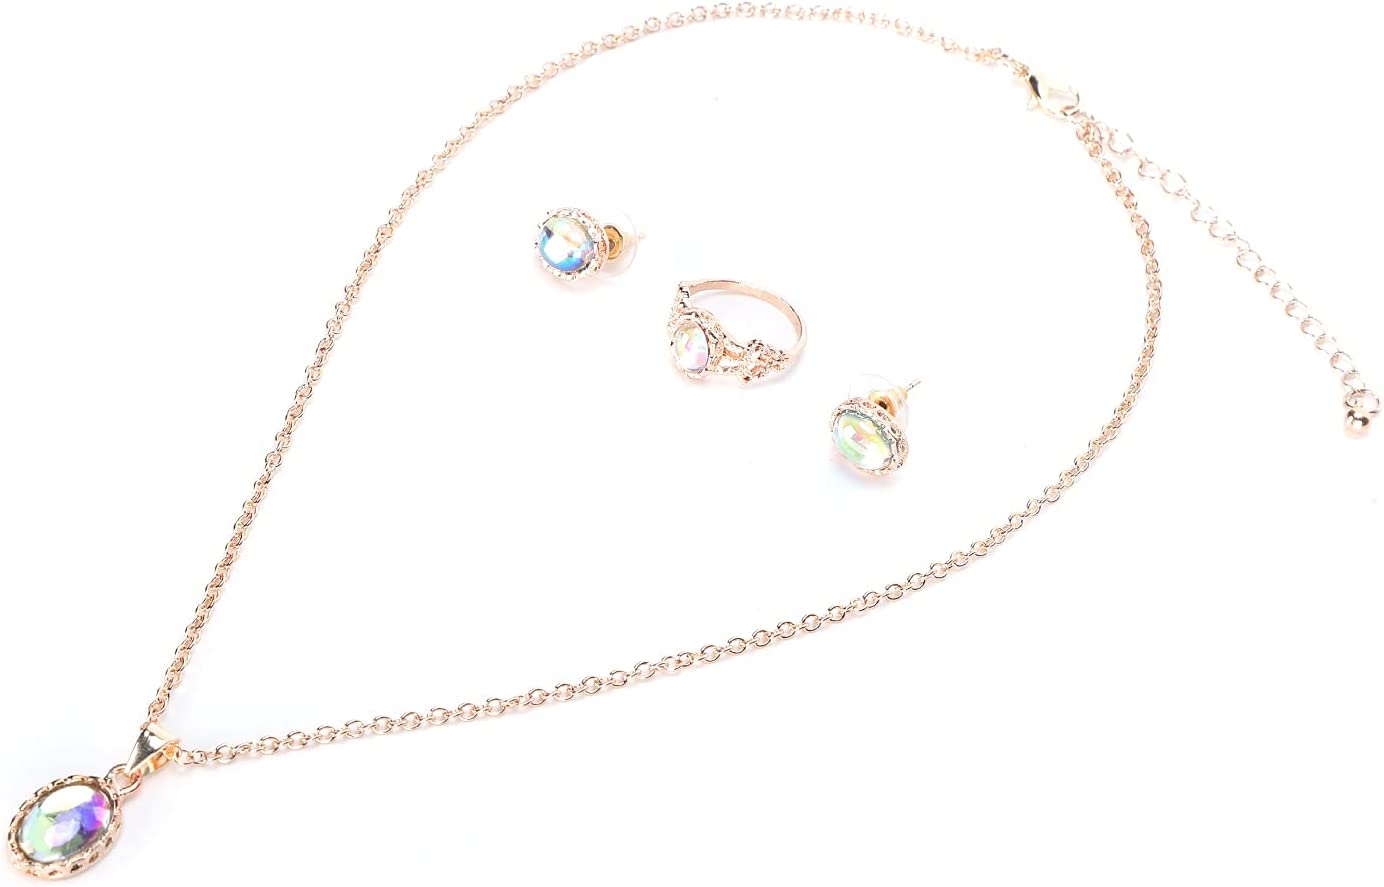 Velaurs Necklace Ring Earrings Set Not Oxidize Special price to Easy Effe Can Max 47% OFF